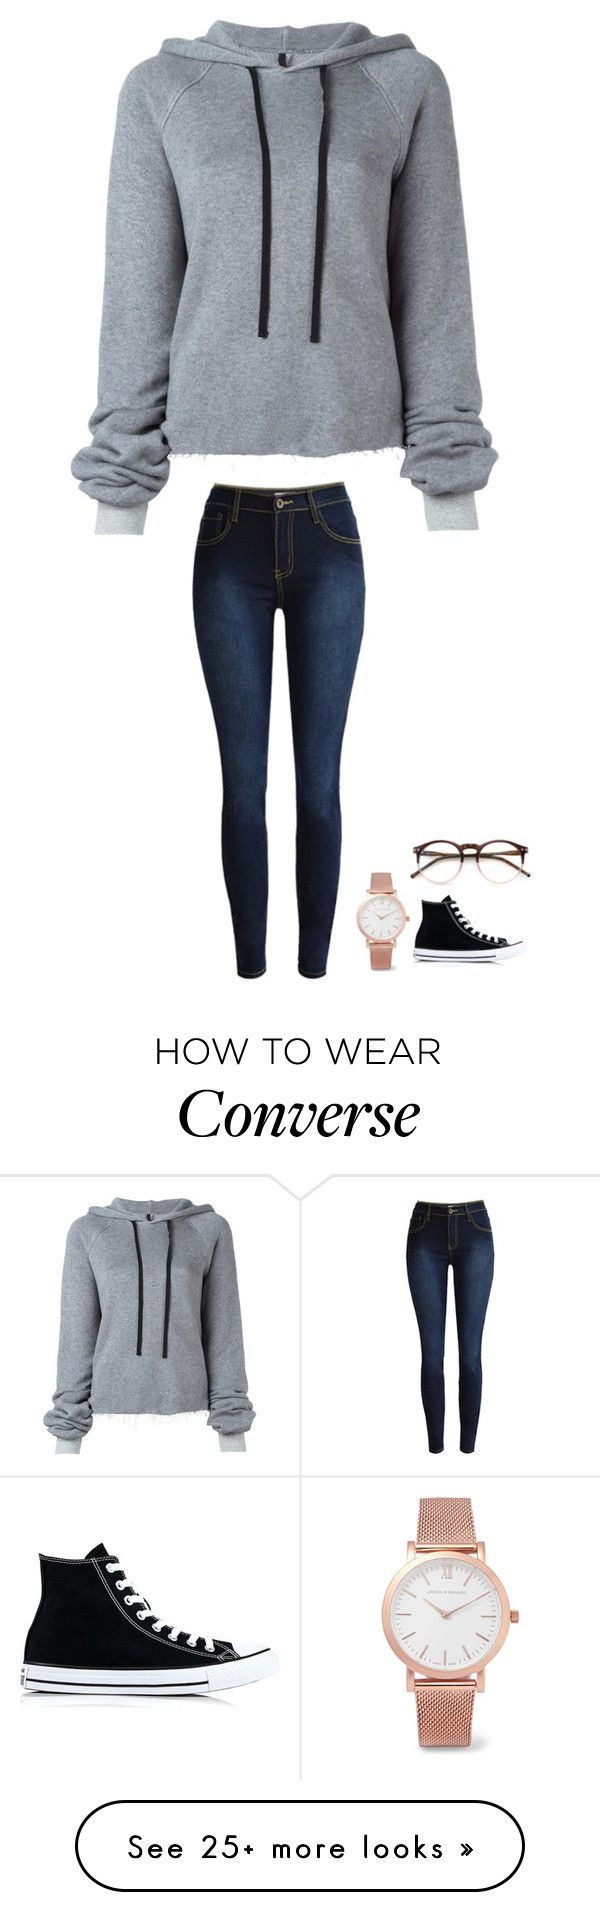 """""""ugh"""" by jasmine2001 on Polyvore featuring Unravel, Wildfox, Larsson & Jennings and Converse"""